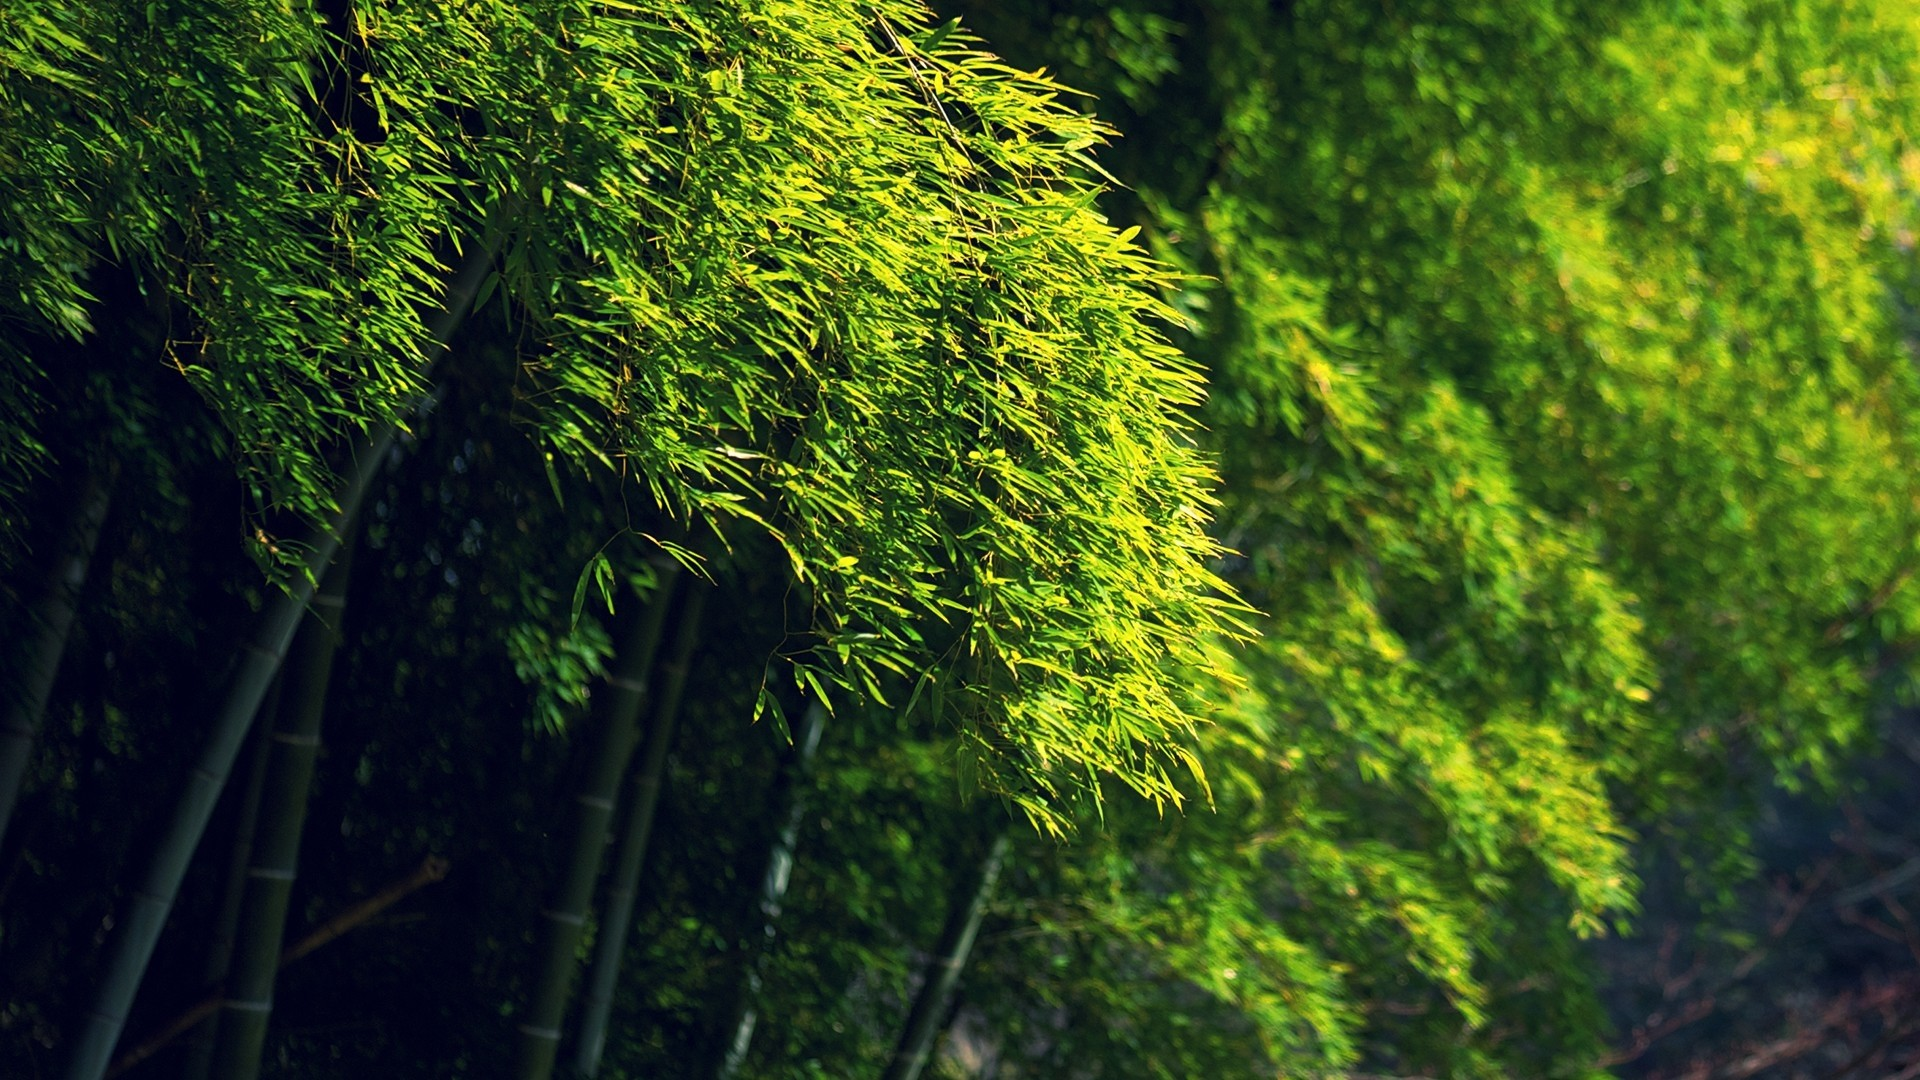 1920x1080 Bamboo green dense forest HD Desktop Wallpaper